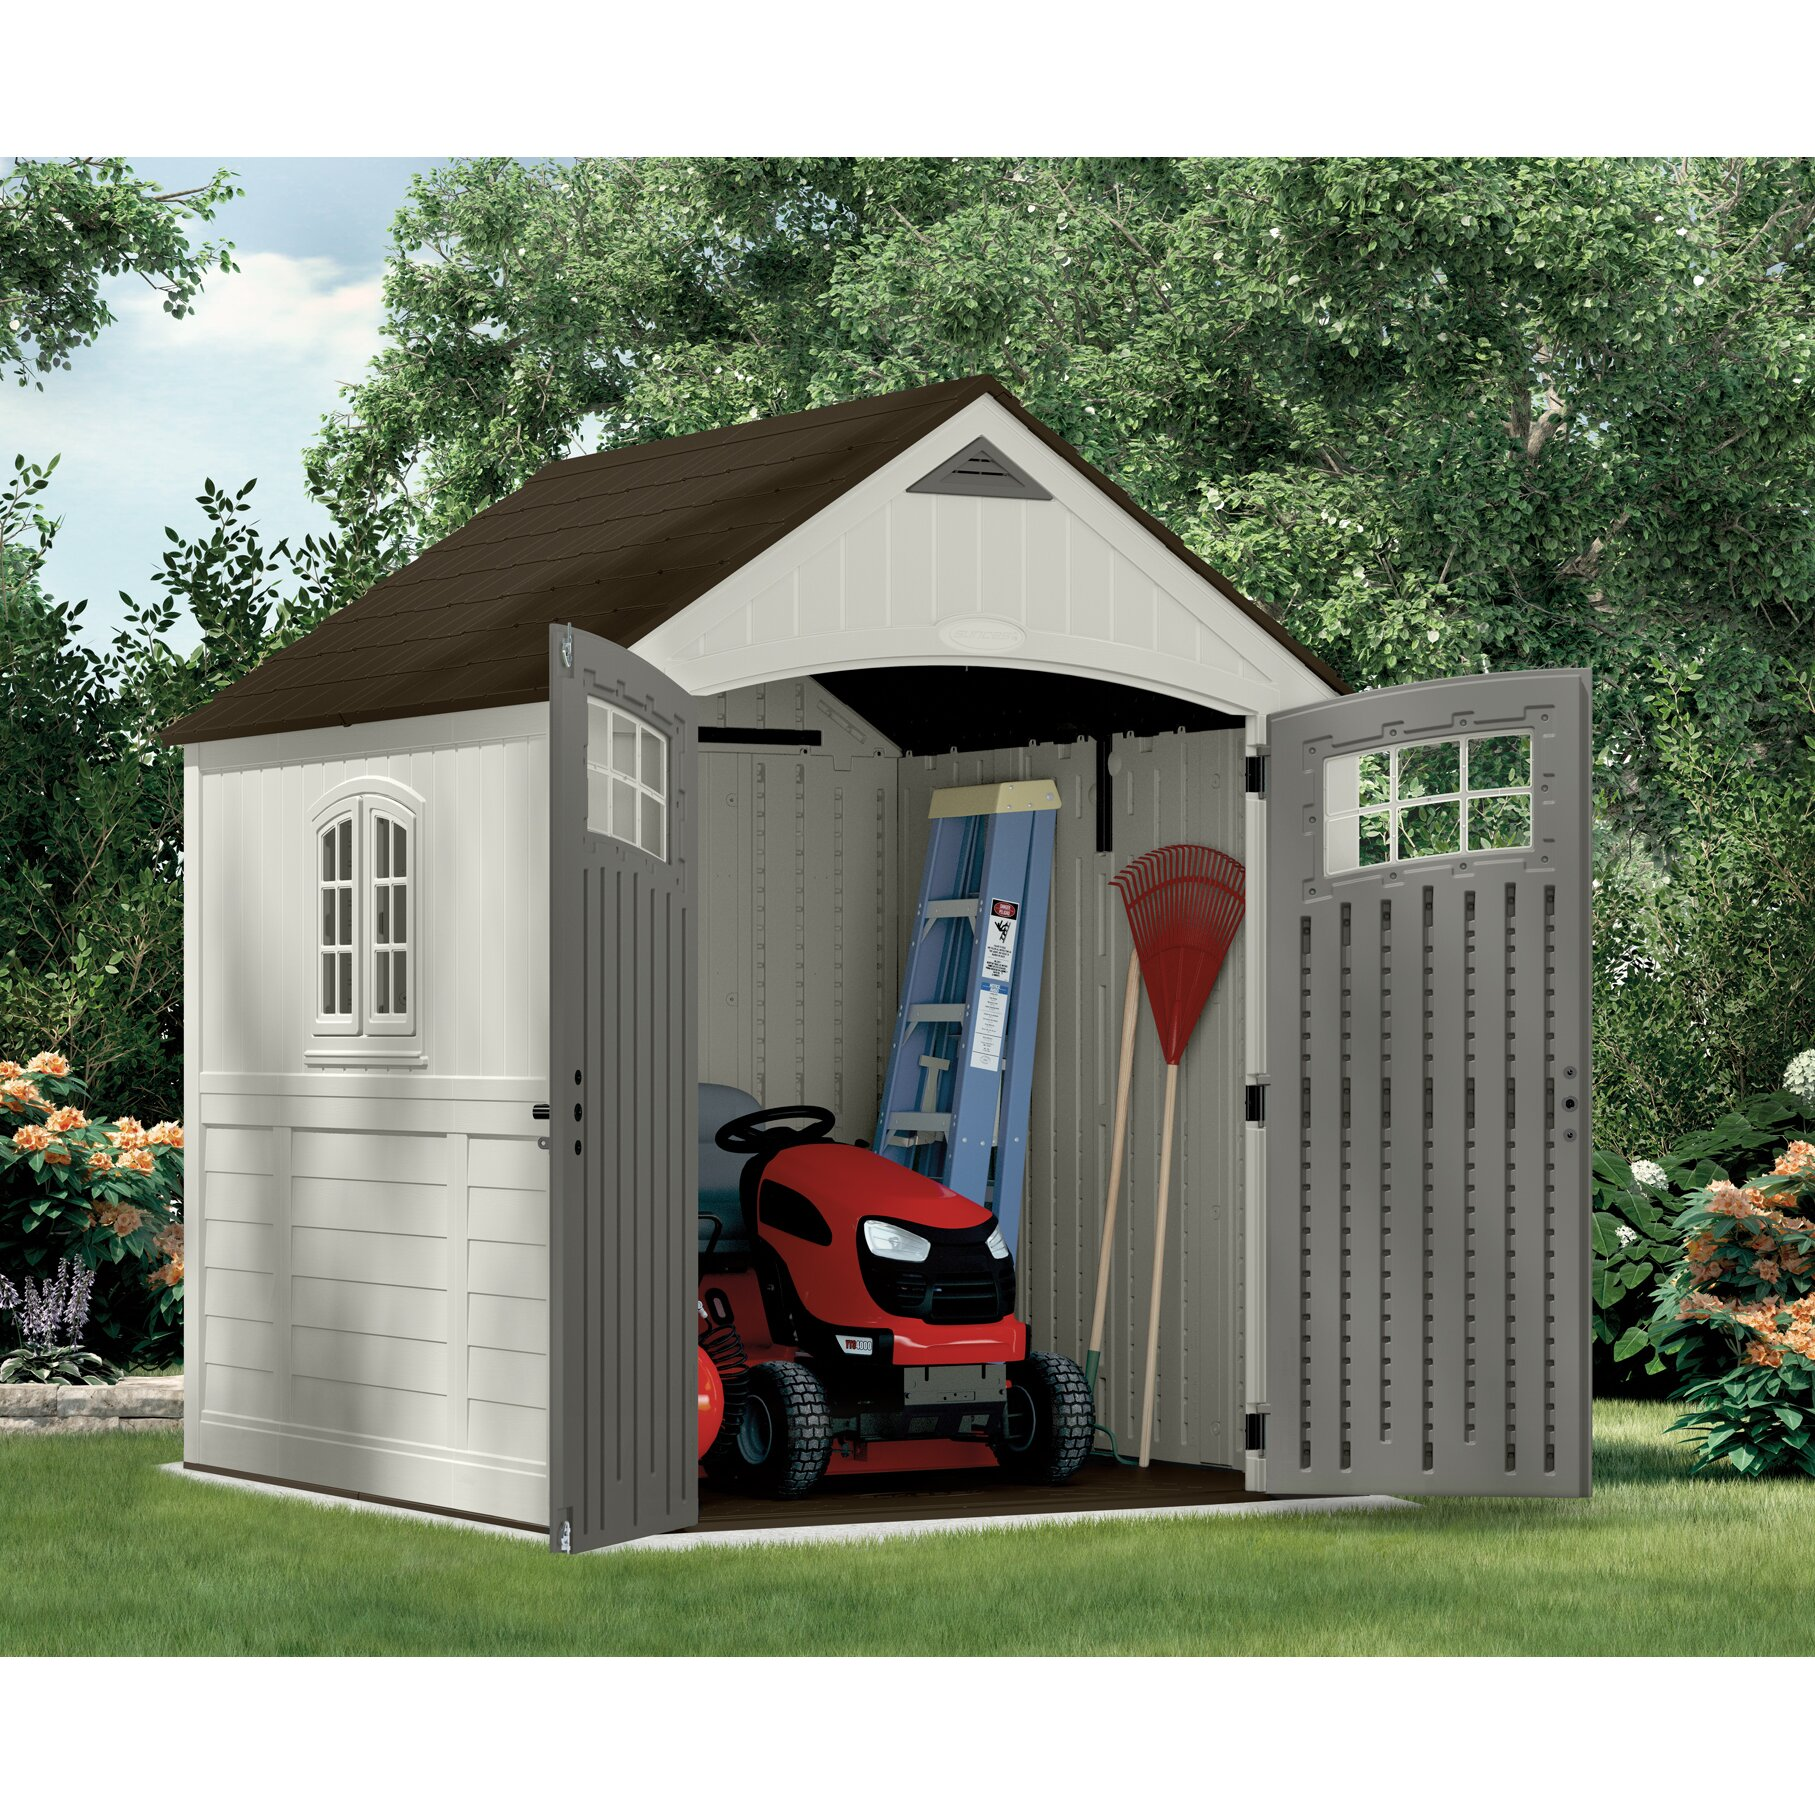 Suncast cascade 7 ft w x 7 ft d resin storage shed for Outdoor storage sheds for sale cheap